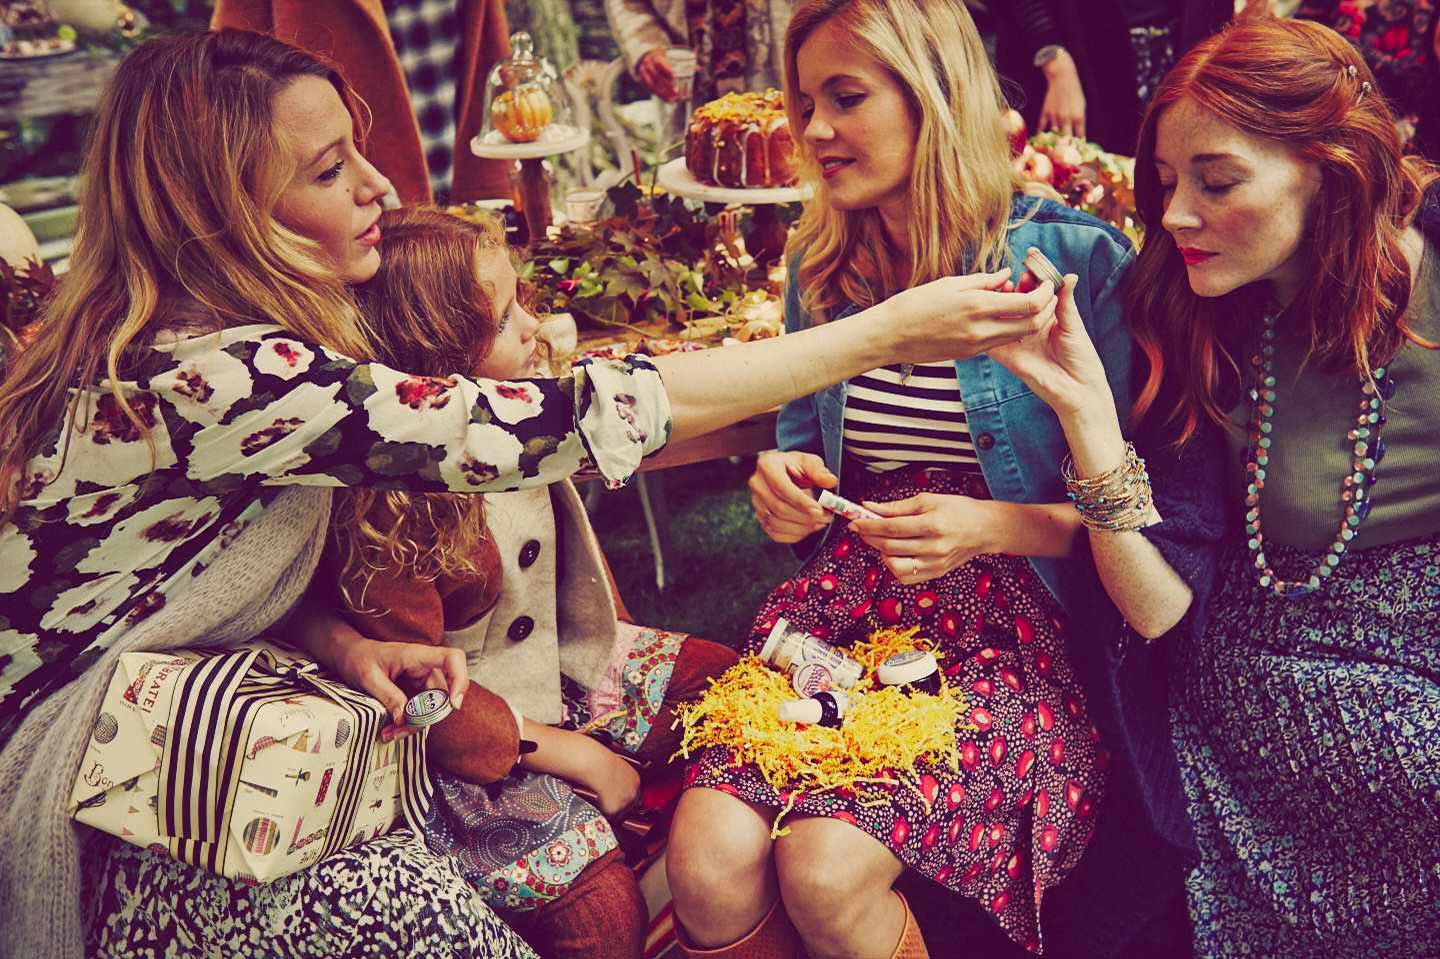 Blake Lively's Baby Shower Bringing up Baby | Preserve - Photography by Eric Lively - Blake Lively's Preserve | Style and Cheek's Favorite Blog Posts of 2014